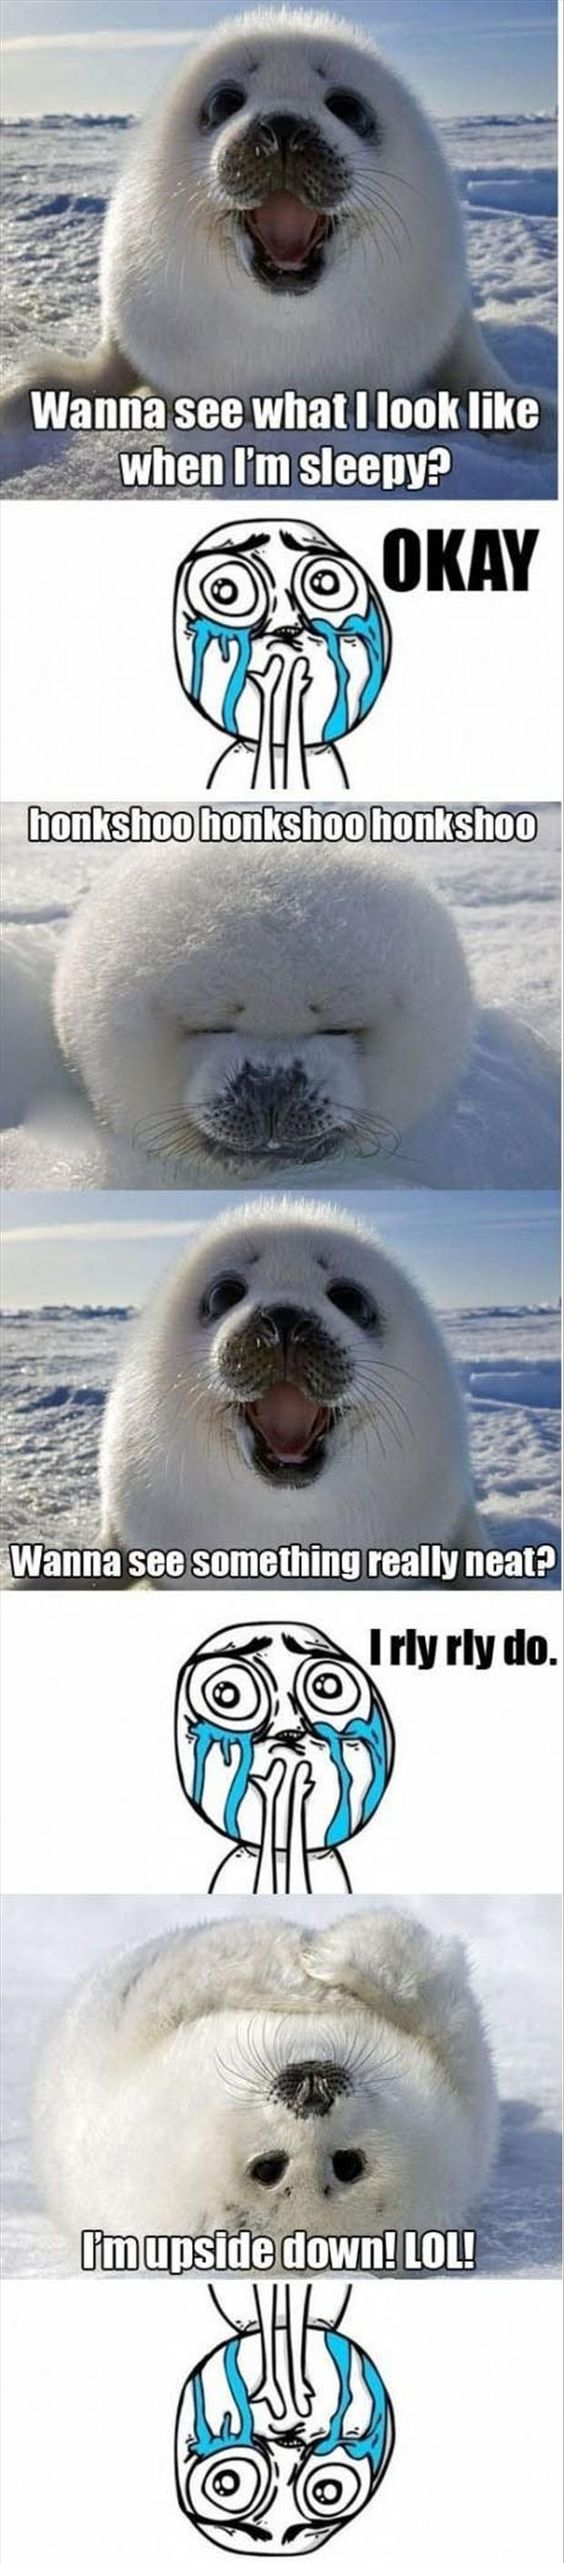 I don't know why I find this so funny, but my stomach hurts from laughing so much!